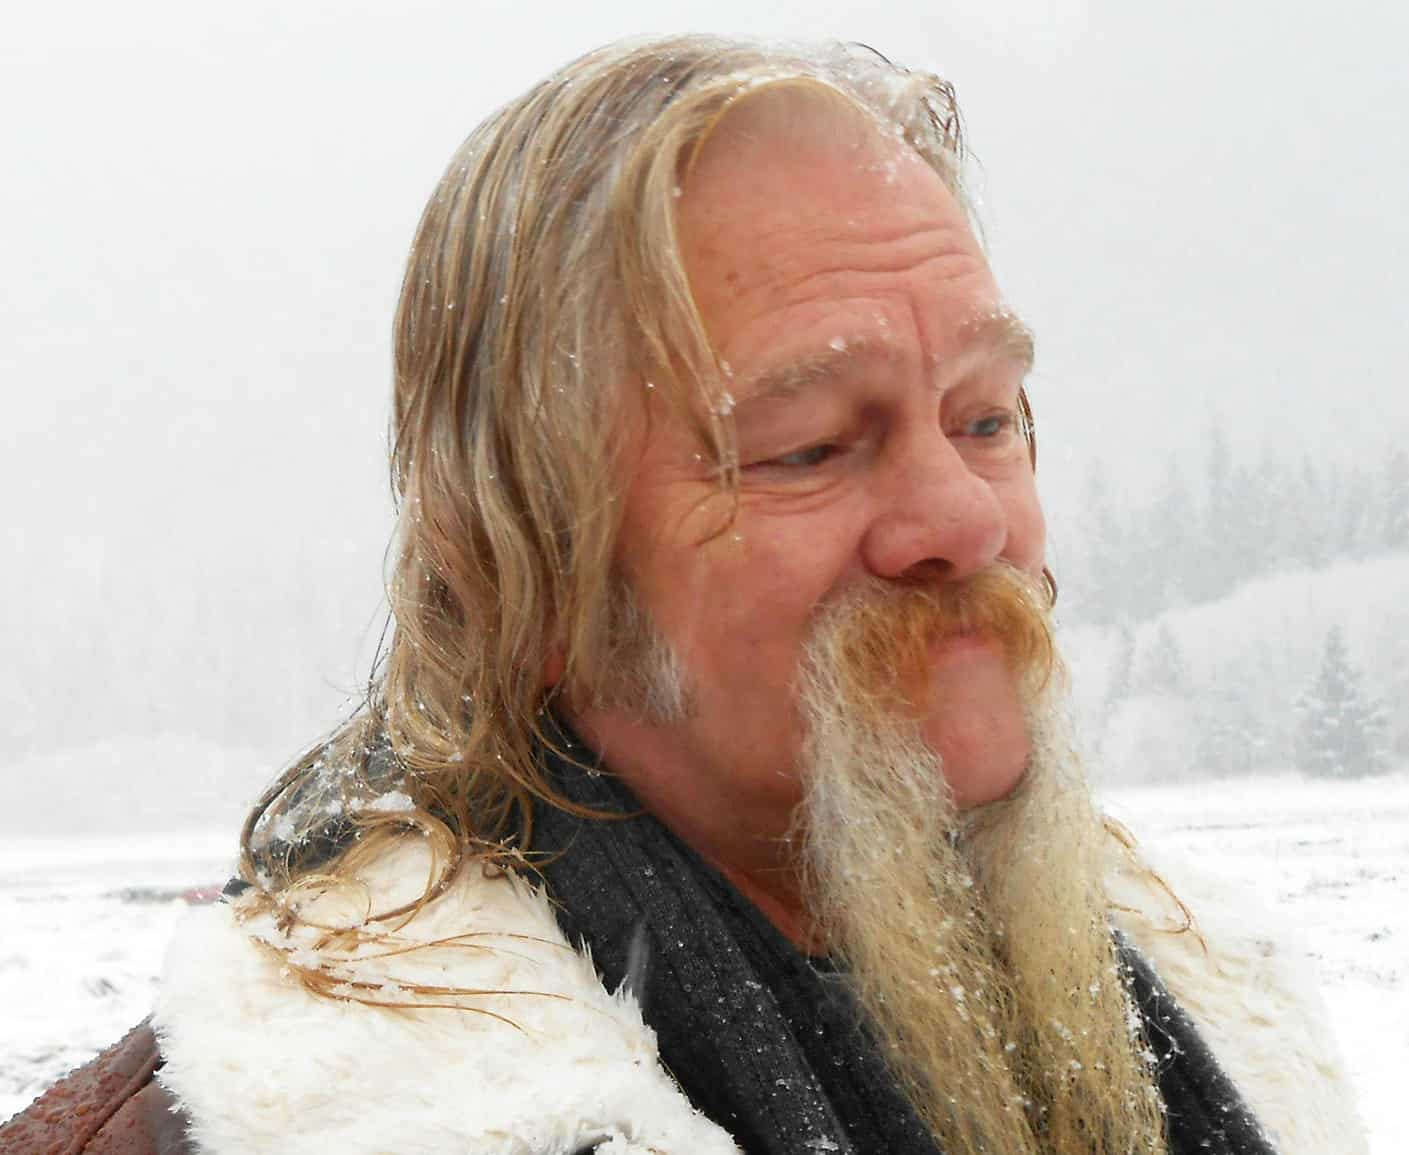 Alaskan Bush People,reality TV star Billy Brown